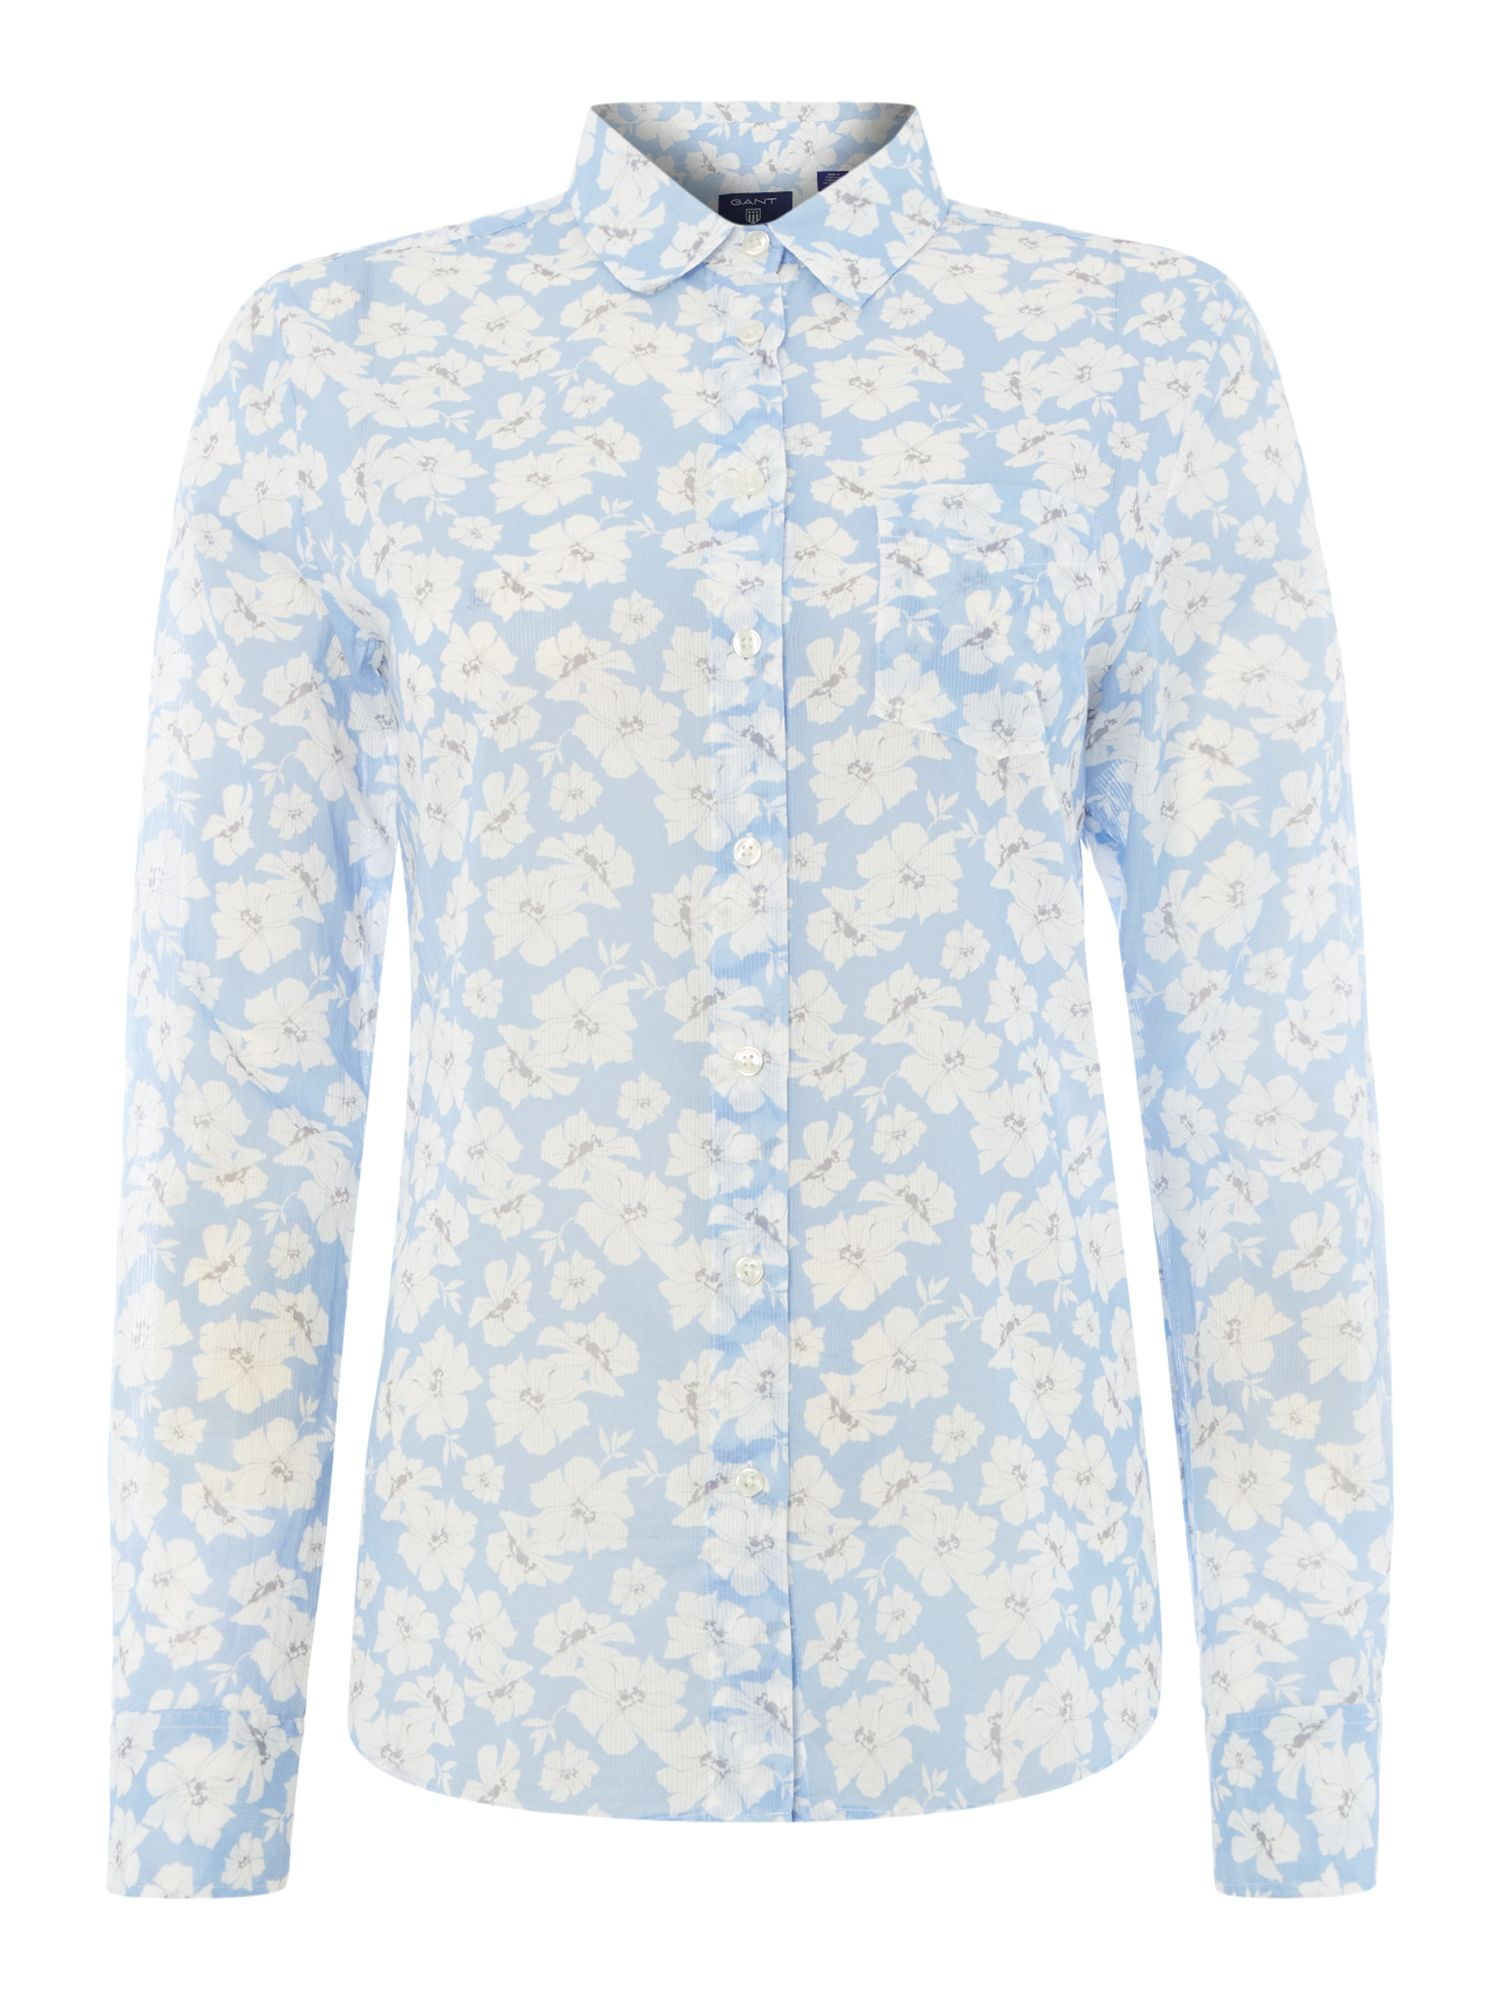 Gant Floral shirt, Light Blue